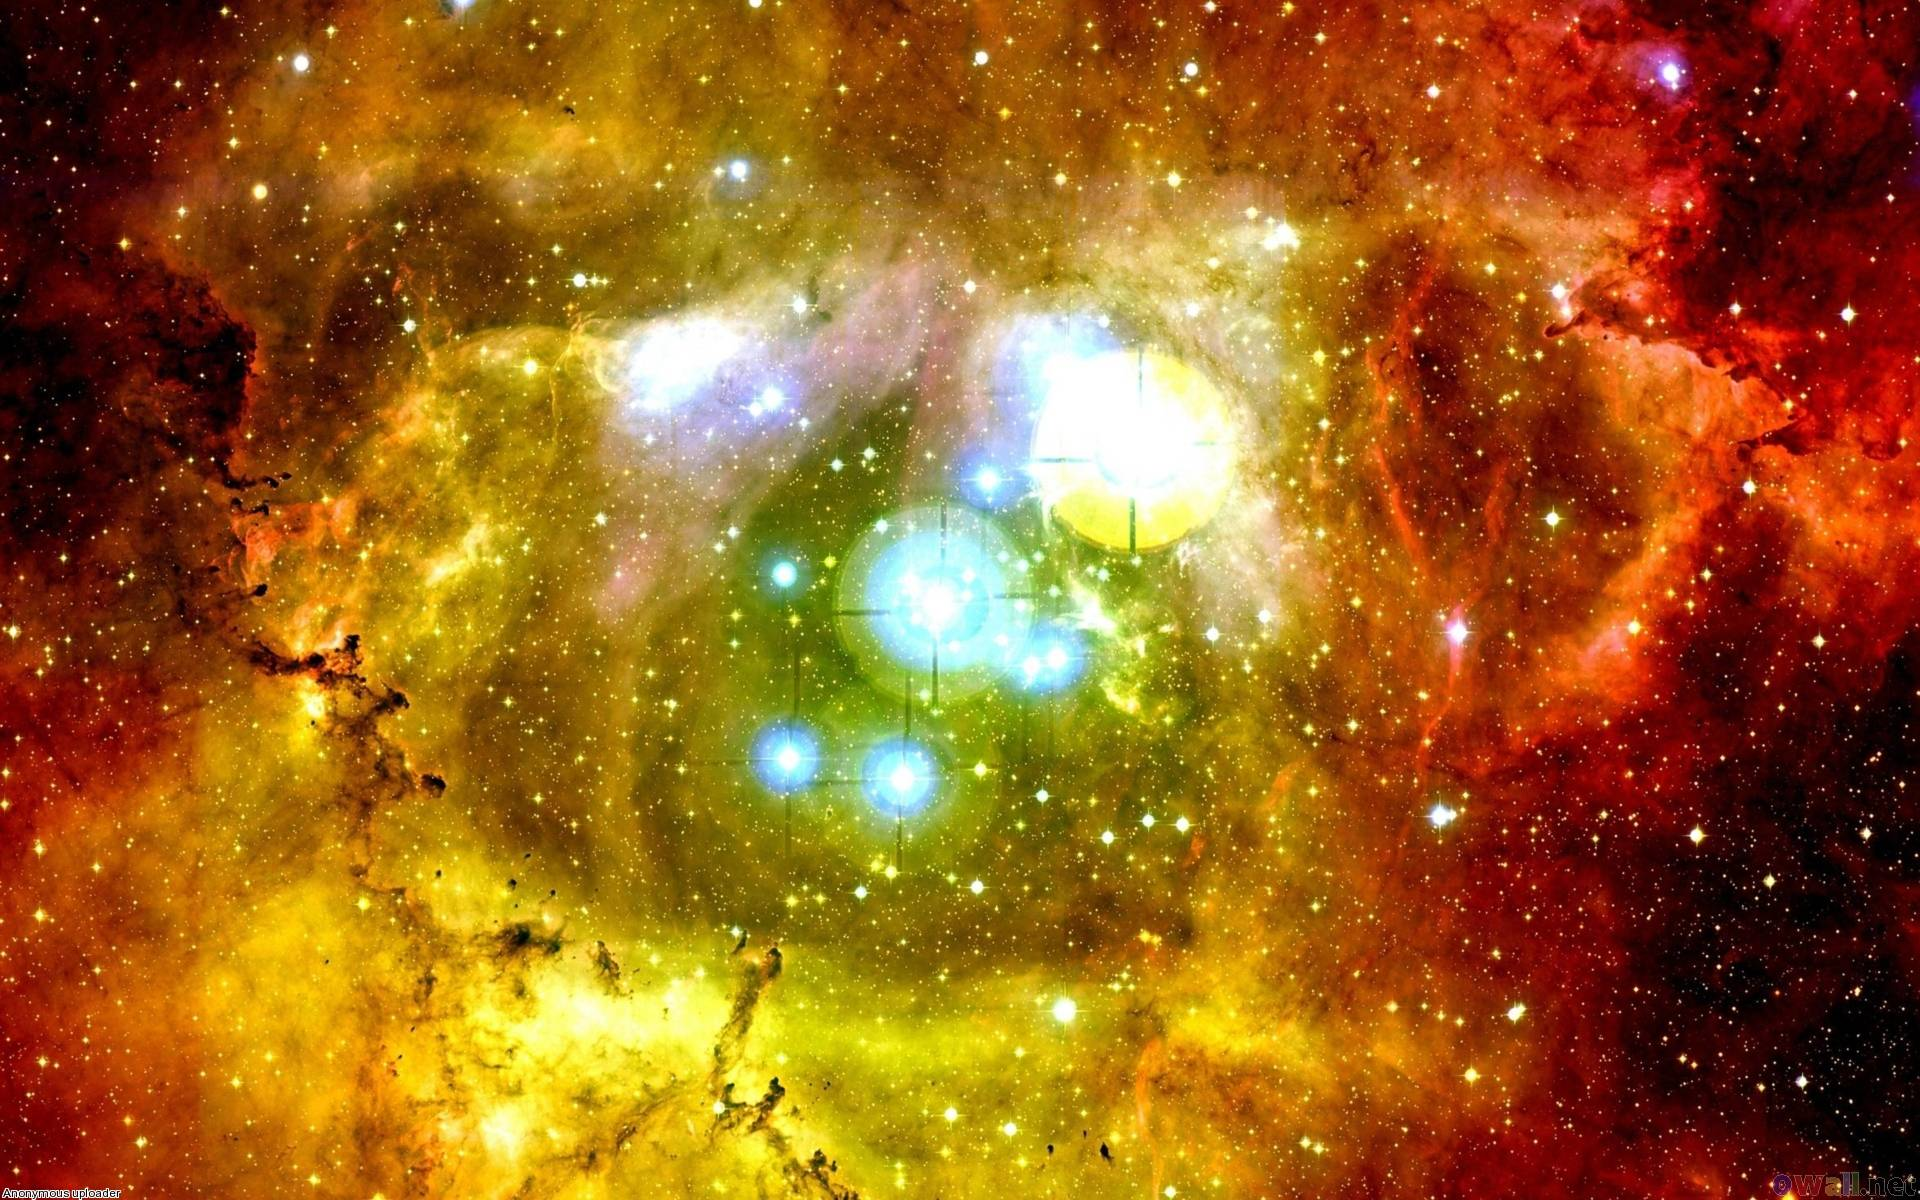 hd nasa star explosion - photo #8